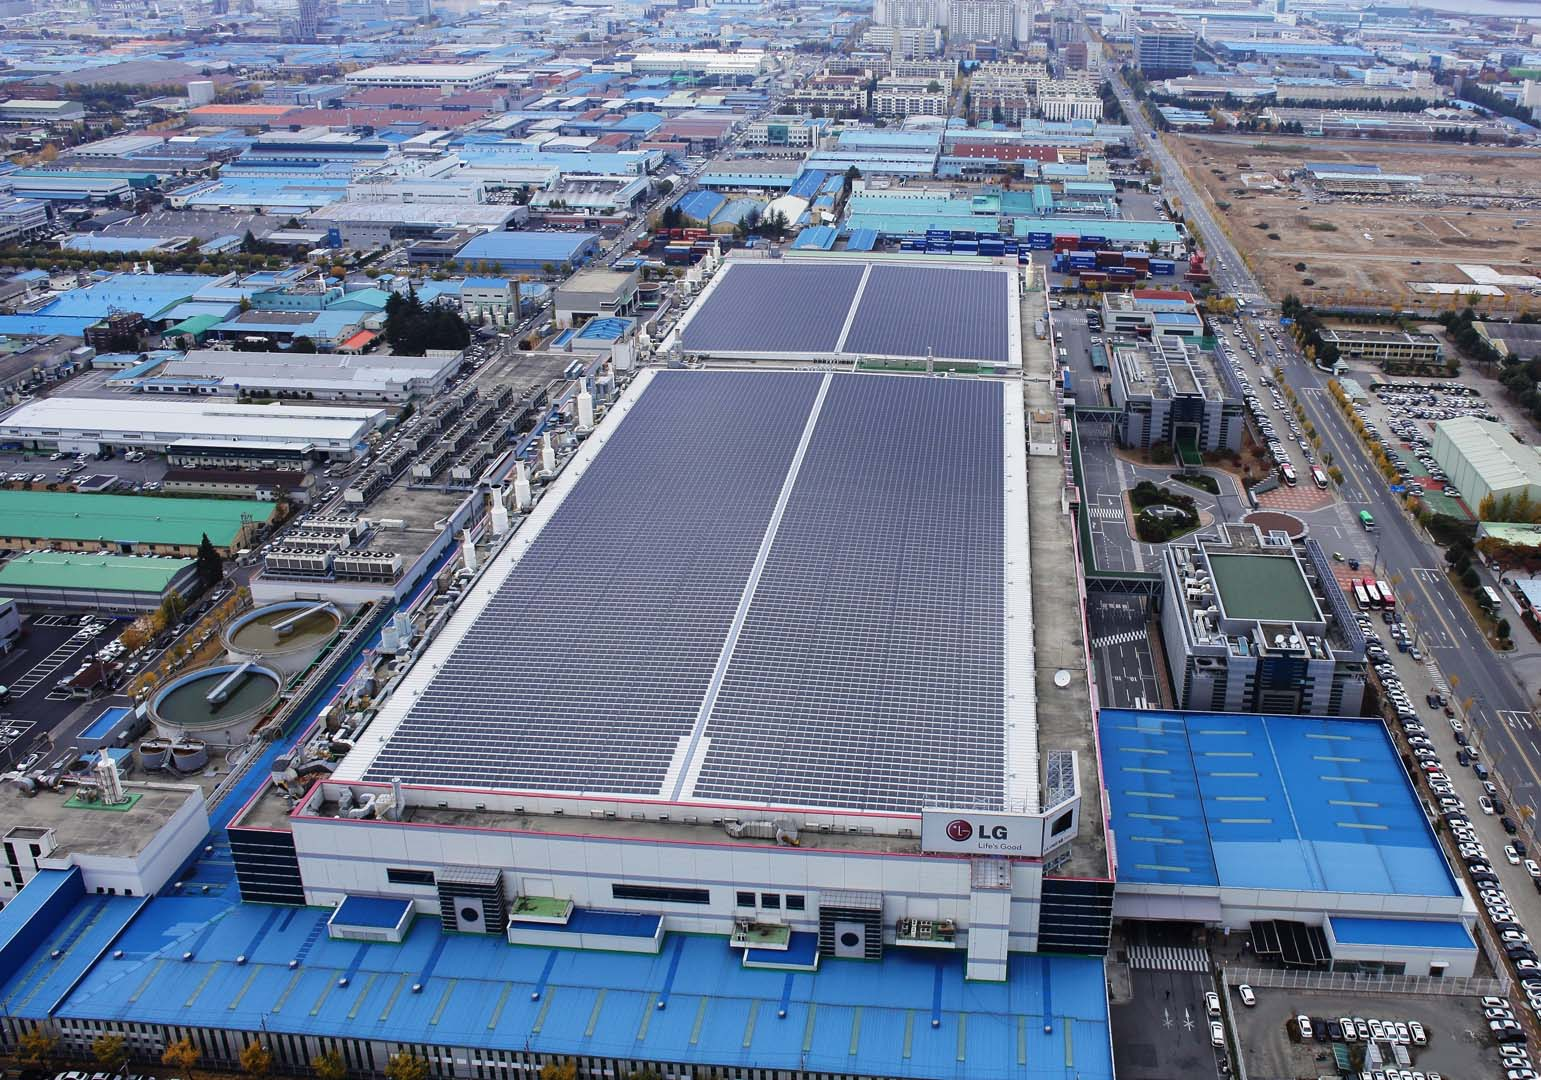 LG's solar manufacturing facility in Gumi (pictured) will see six new production lines added. Image: LG.